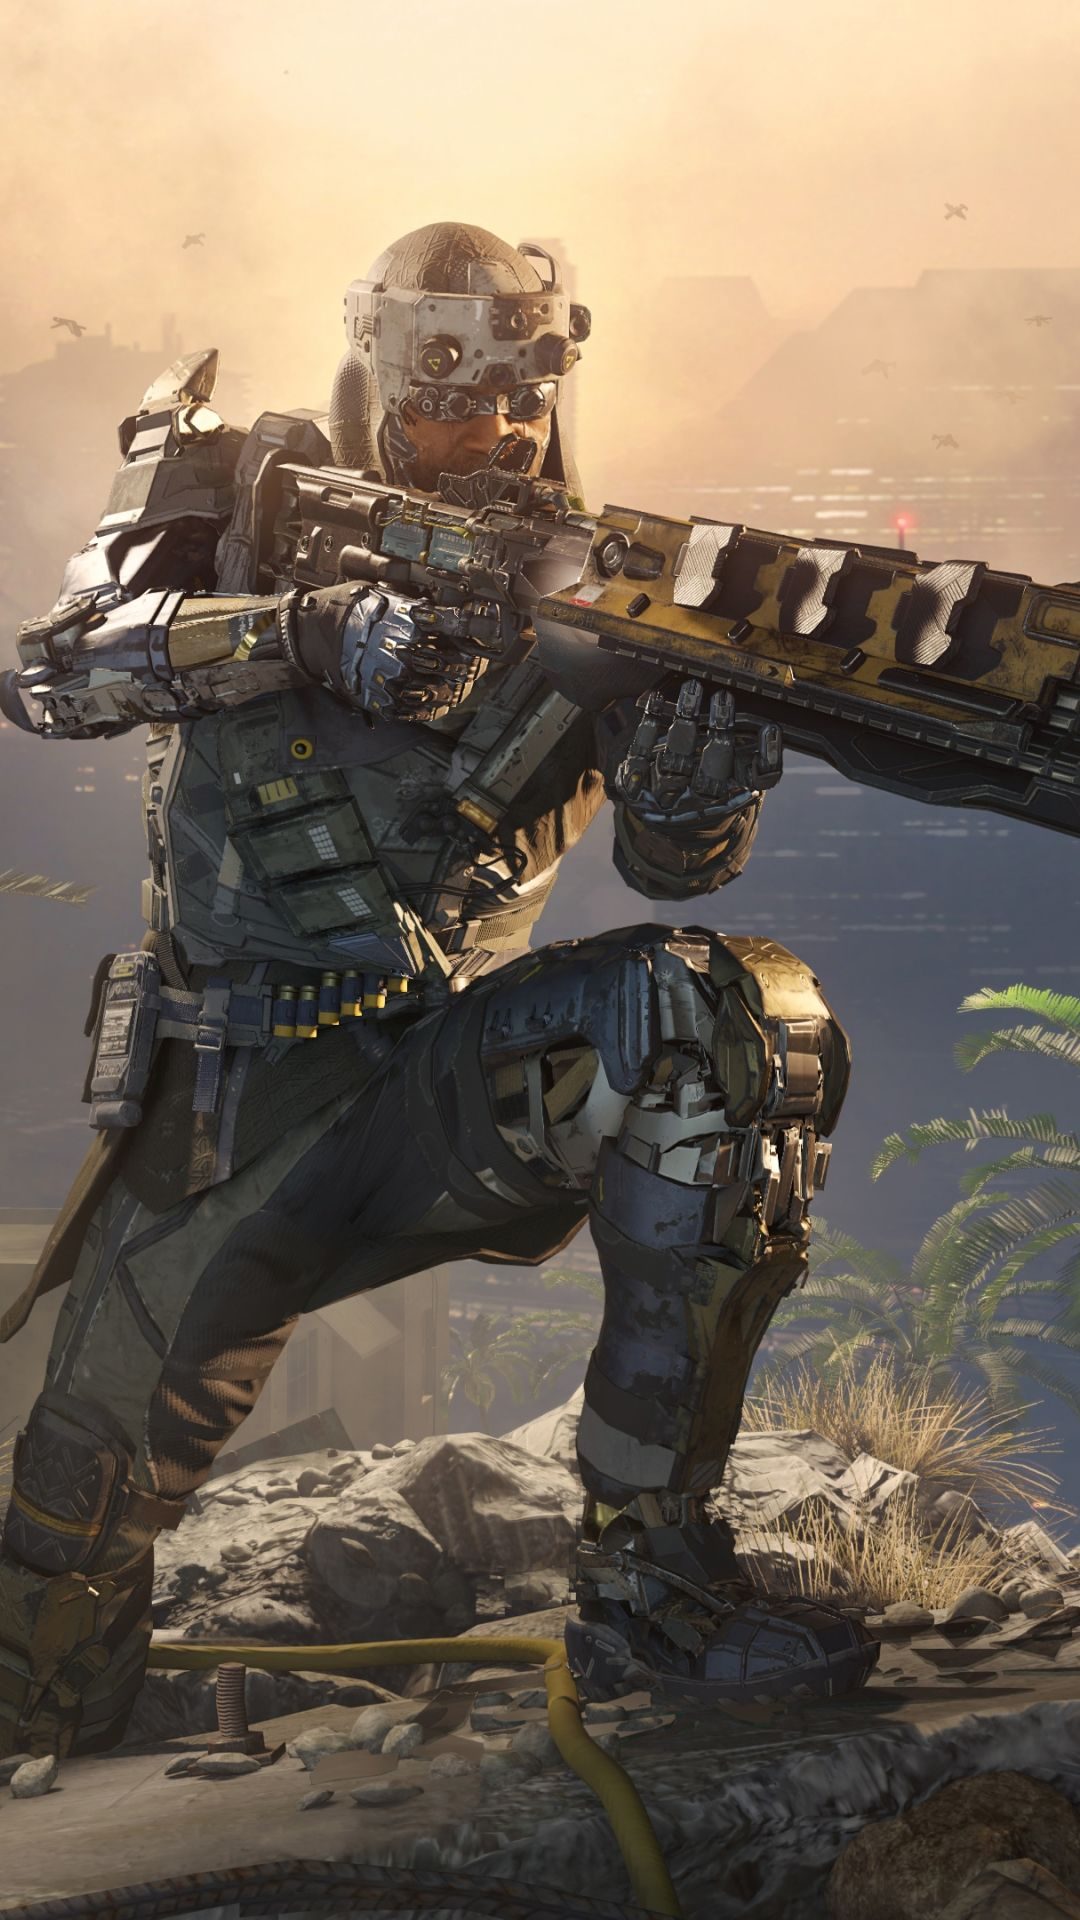 Spectre Call Of Duty Black Ops 3 Picture In 2020 Call Of Duty